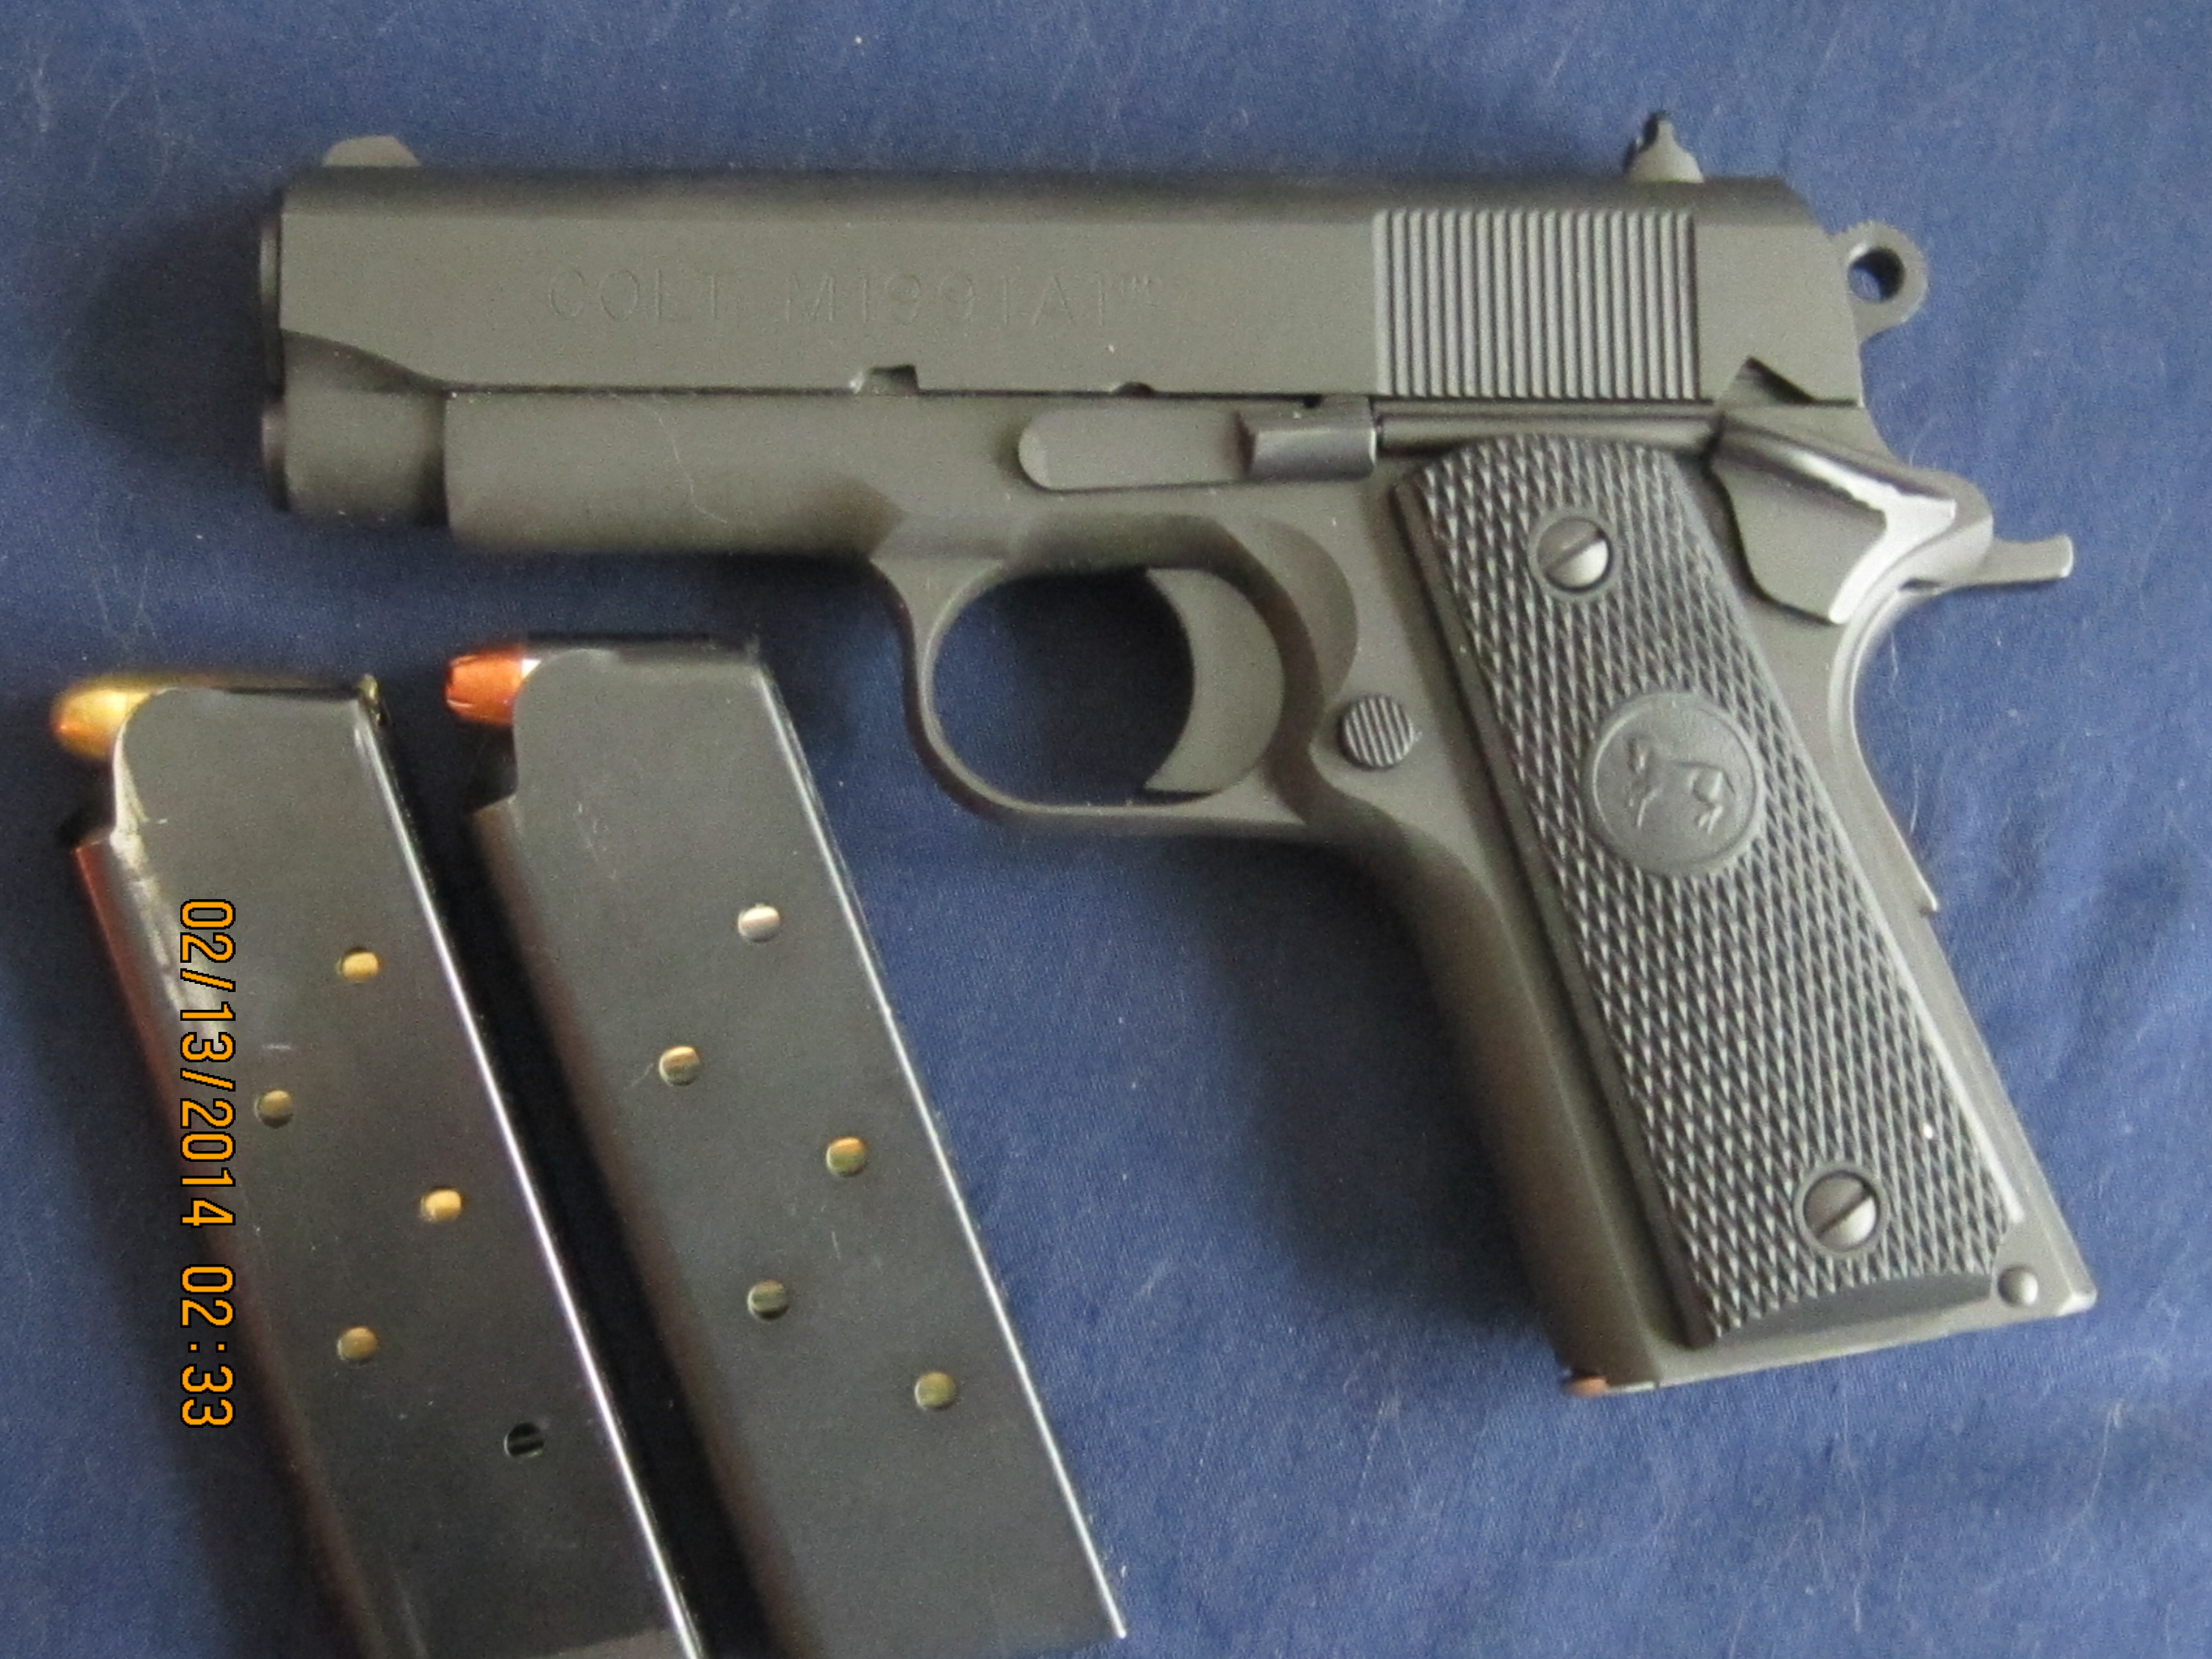 I knew I should not have bought  that 1911-img_0531.jpg